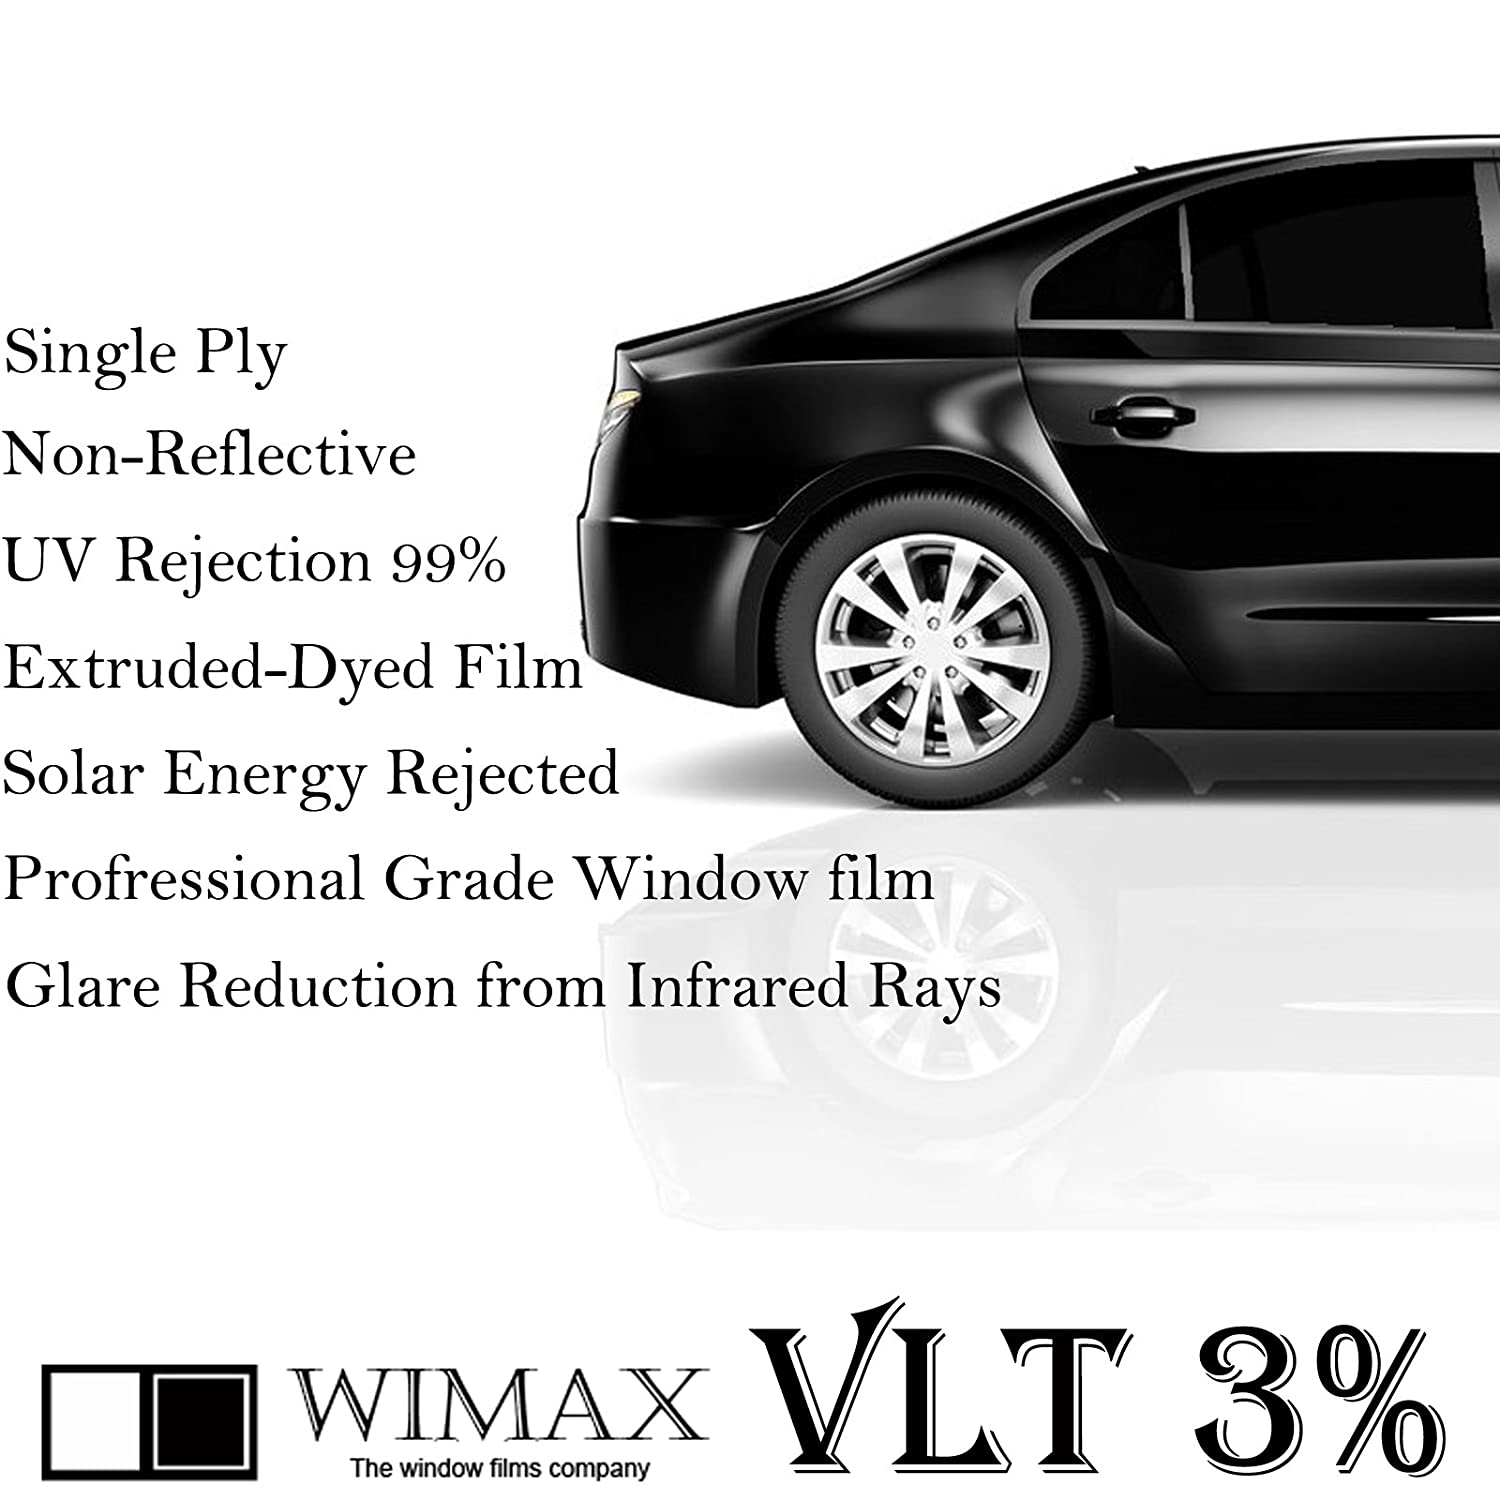 Wimax Limo 3% VLT 36' In x 15' Ft Feet Uncut Roll Window Tint Film Auto Car Home Office